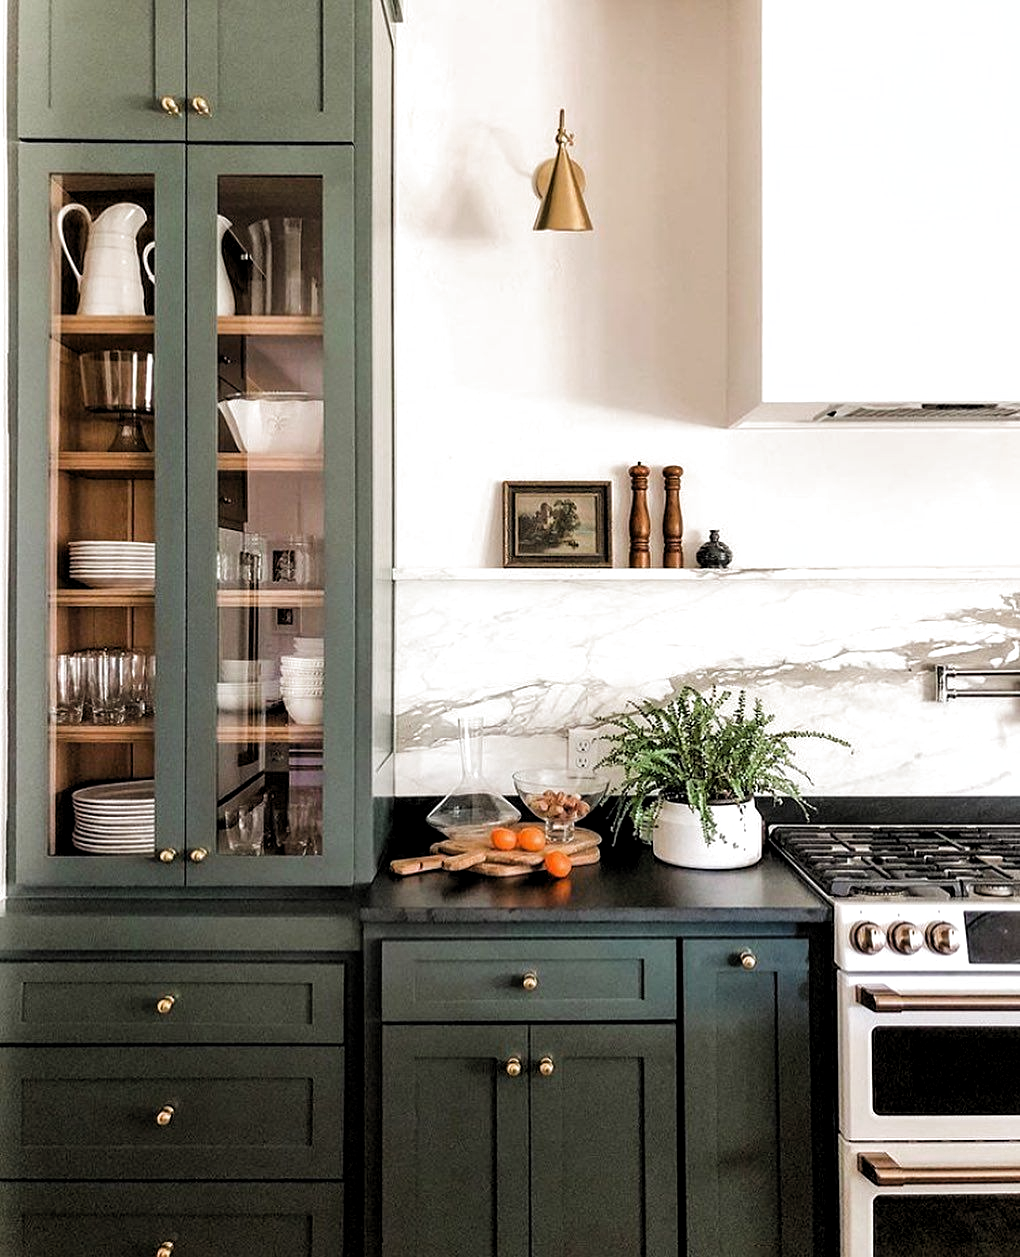 Scoutandnimble On Instagram Give Us All The Moody Greens Absolutely Loving This Kitchen In 2020 Kitchen Interior Green Kitchen Cabinets Diy Kitchen Remodel